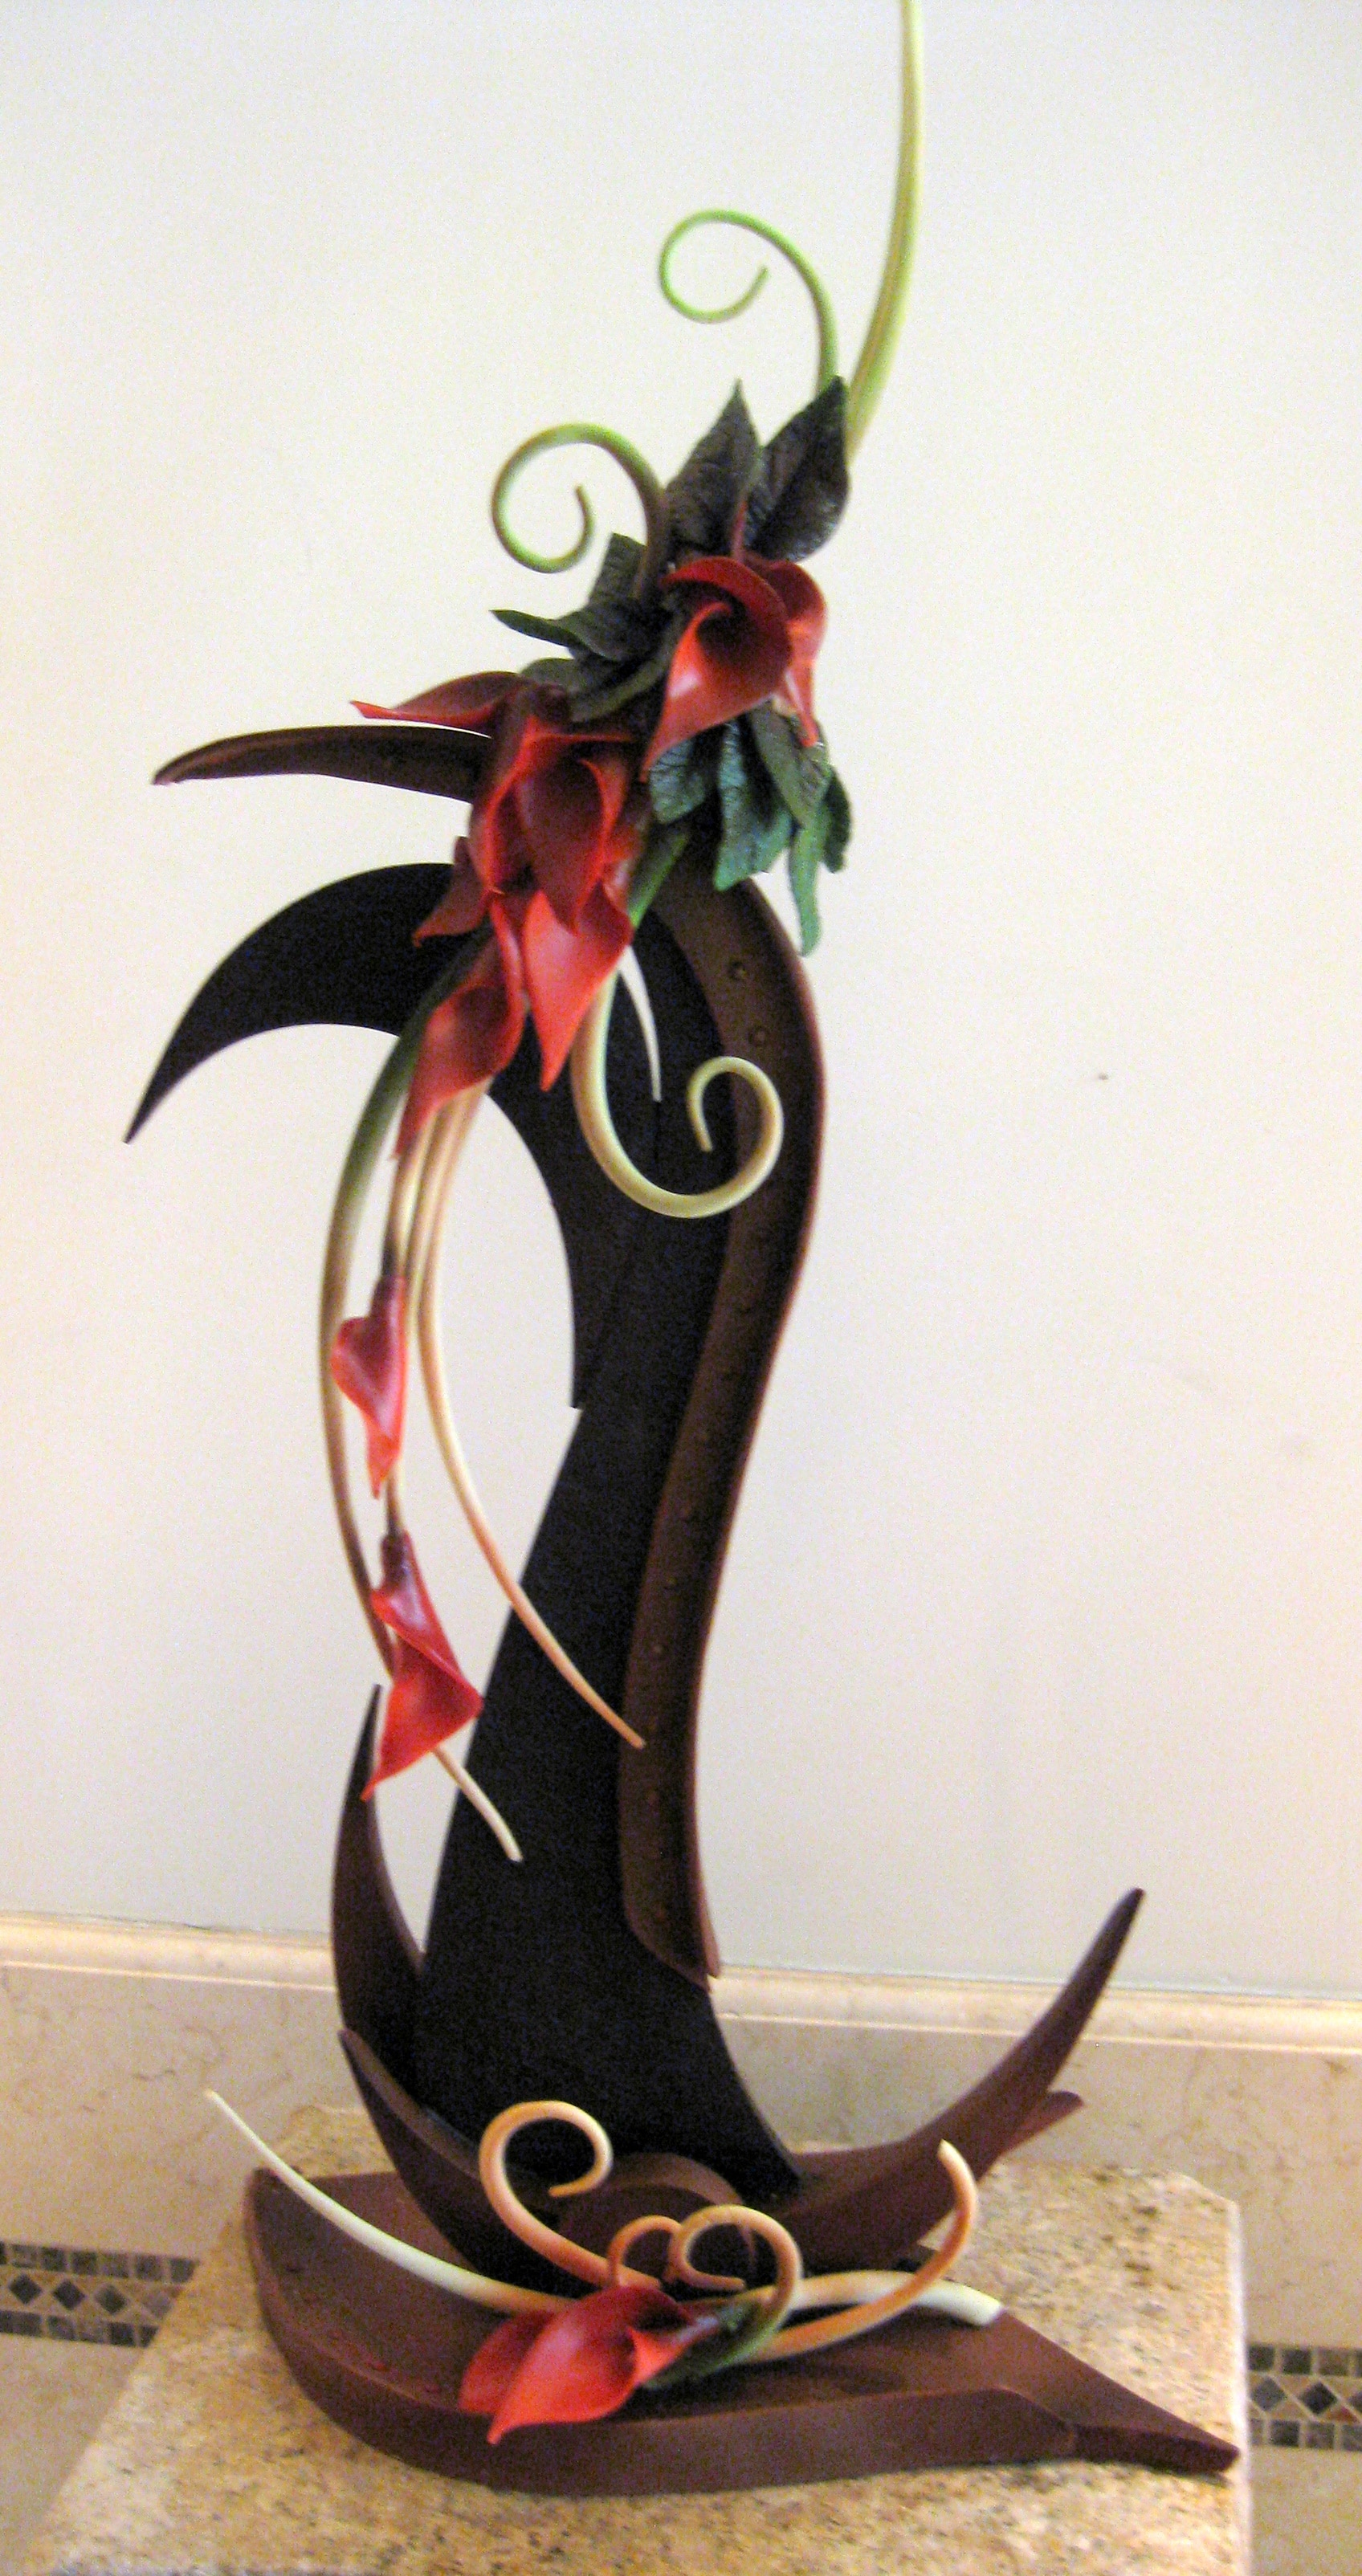 Cake Art Modeling Chocolate : 1000+ images about Chocolate Sculpture on Pinterest ...